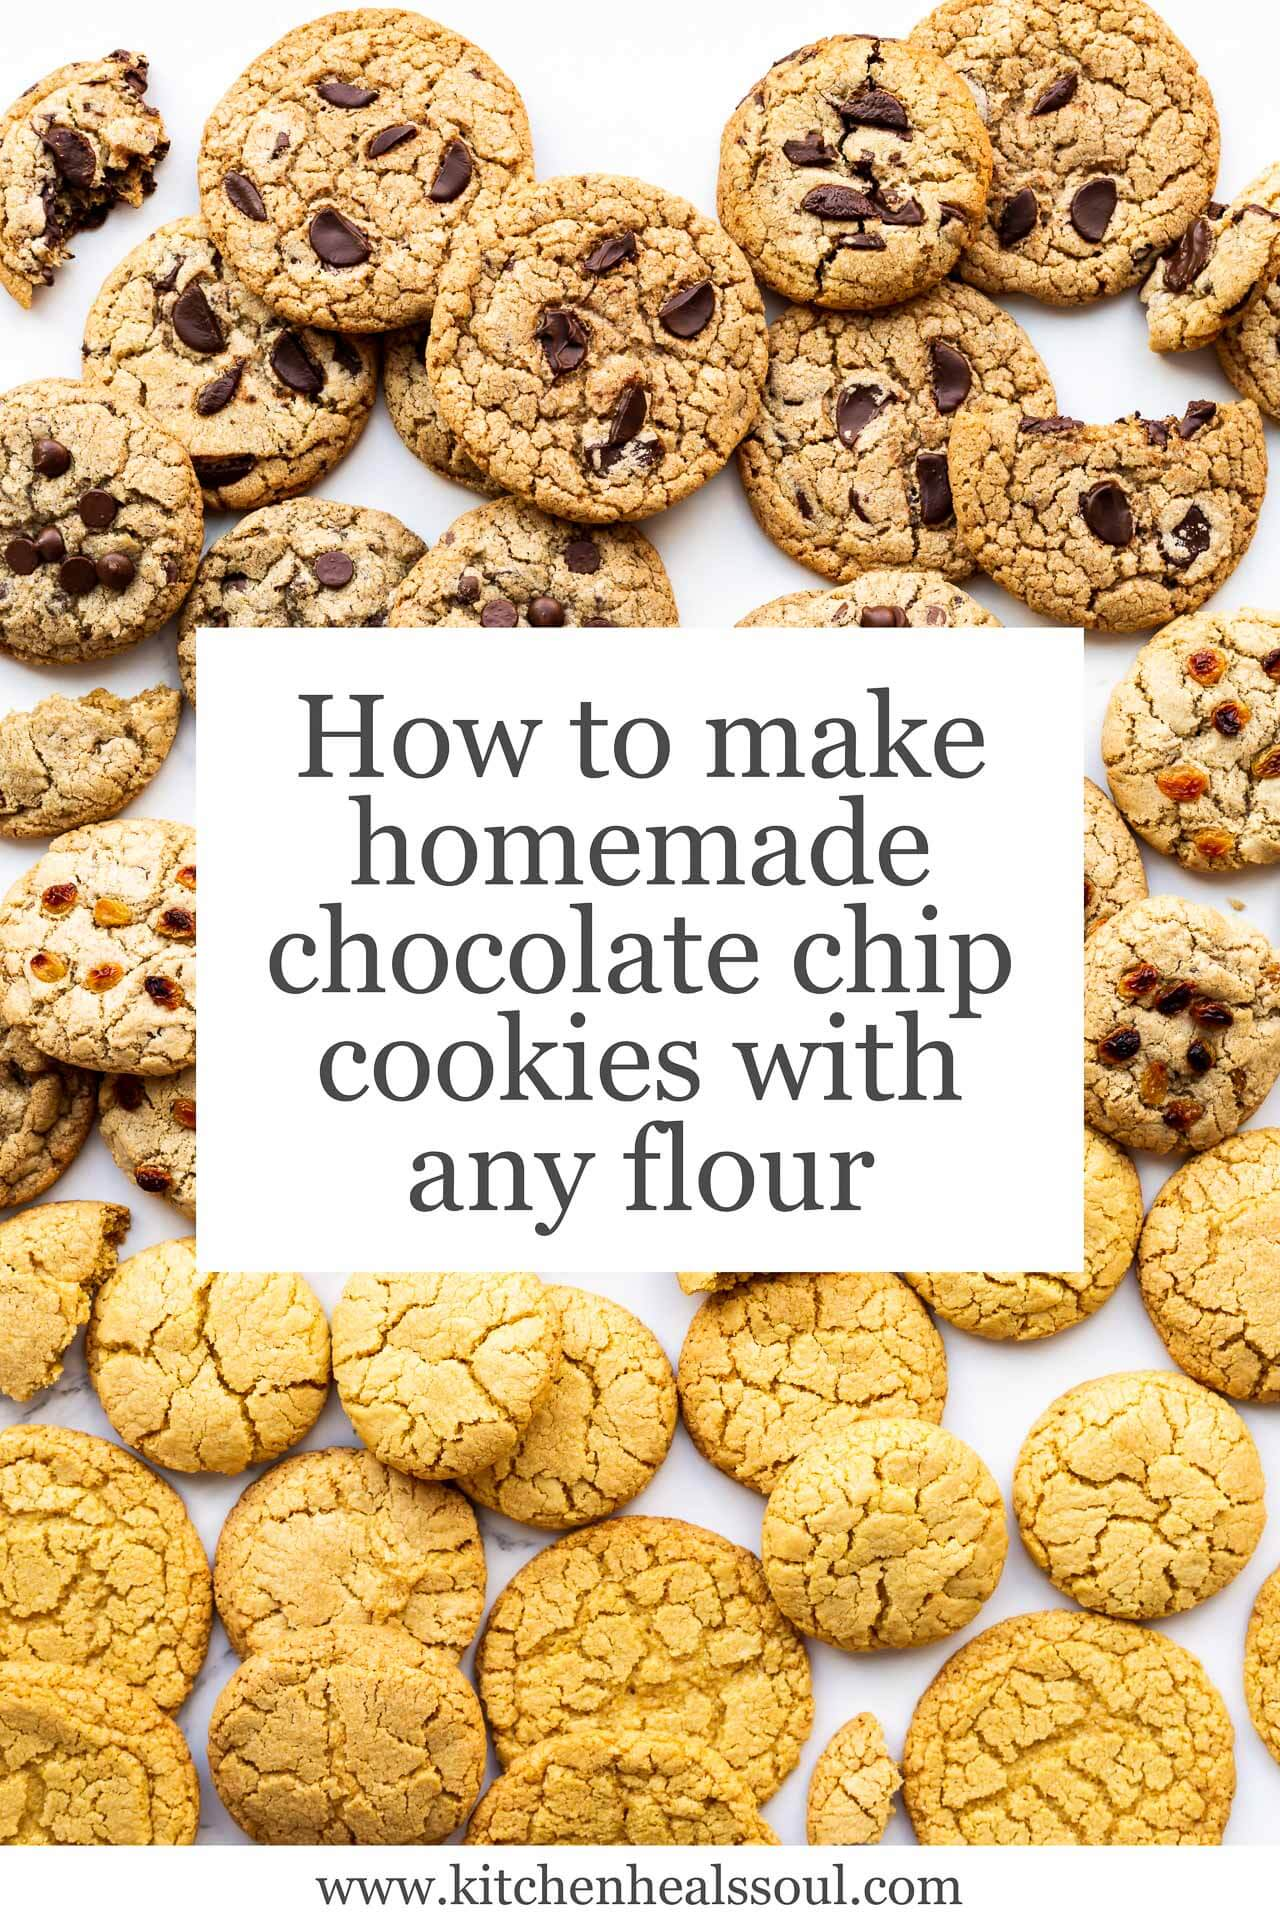 Image filled with homemade chocolate chip cookies made with different flours, including whole wheat flour, buckwheat flour, oat flour, and even corn flour (producing yellower cookies)